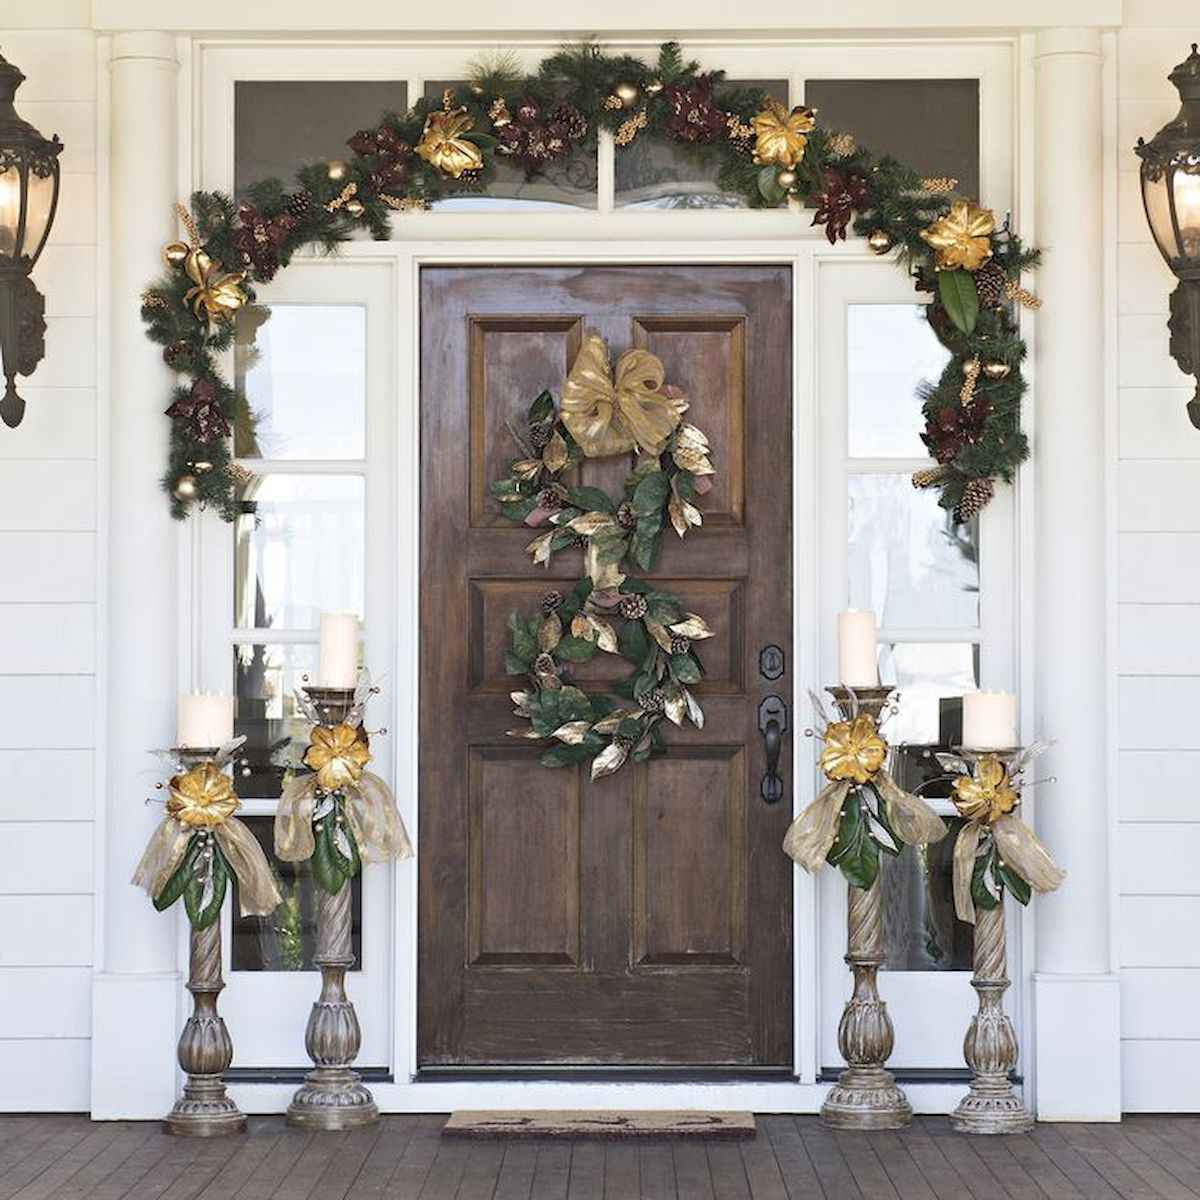 50 stunning christmas front porch decor ideas and design (11)